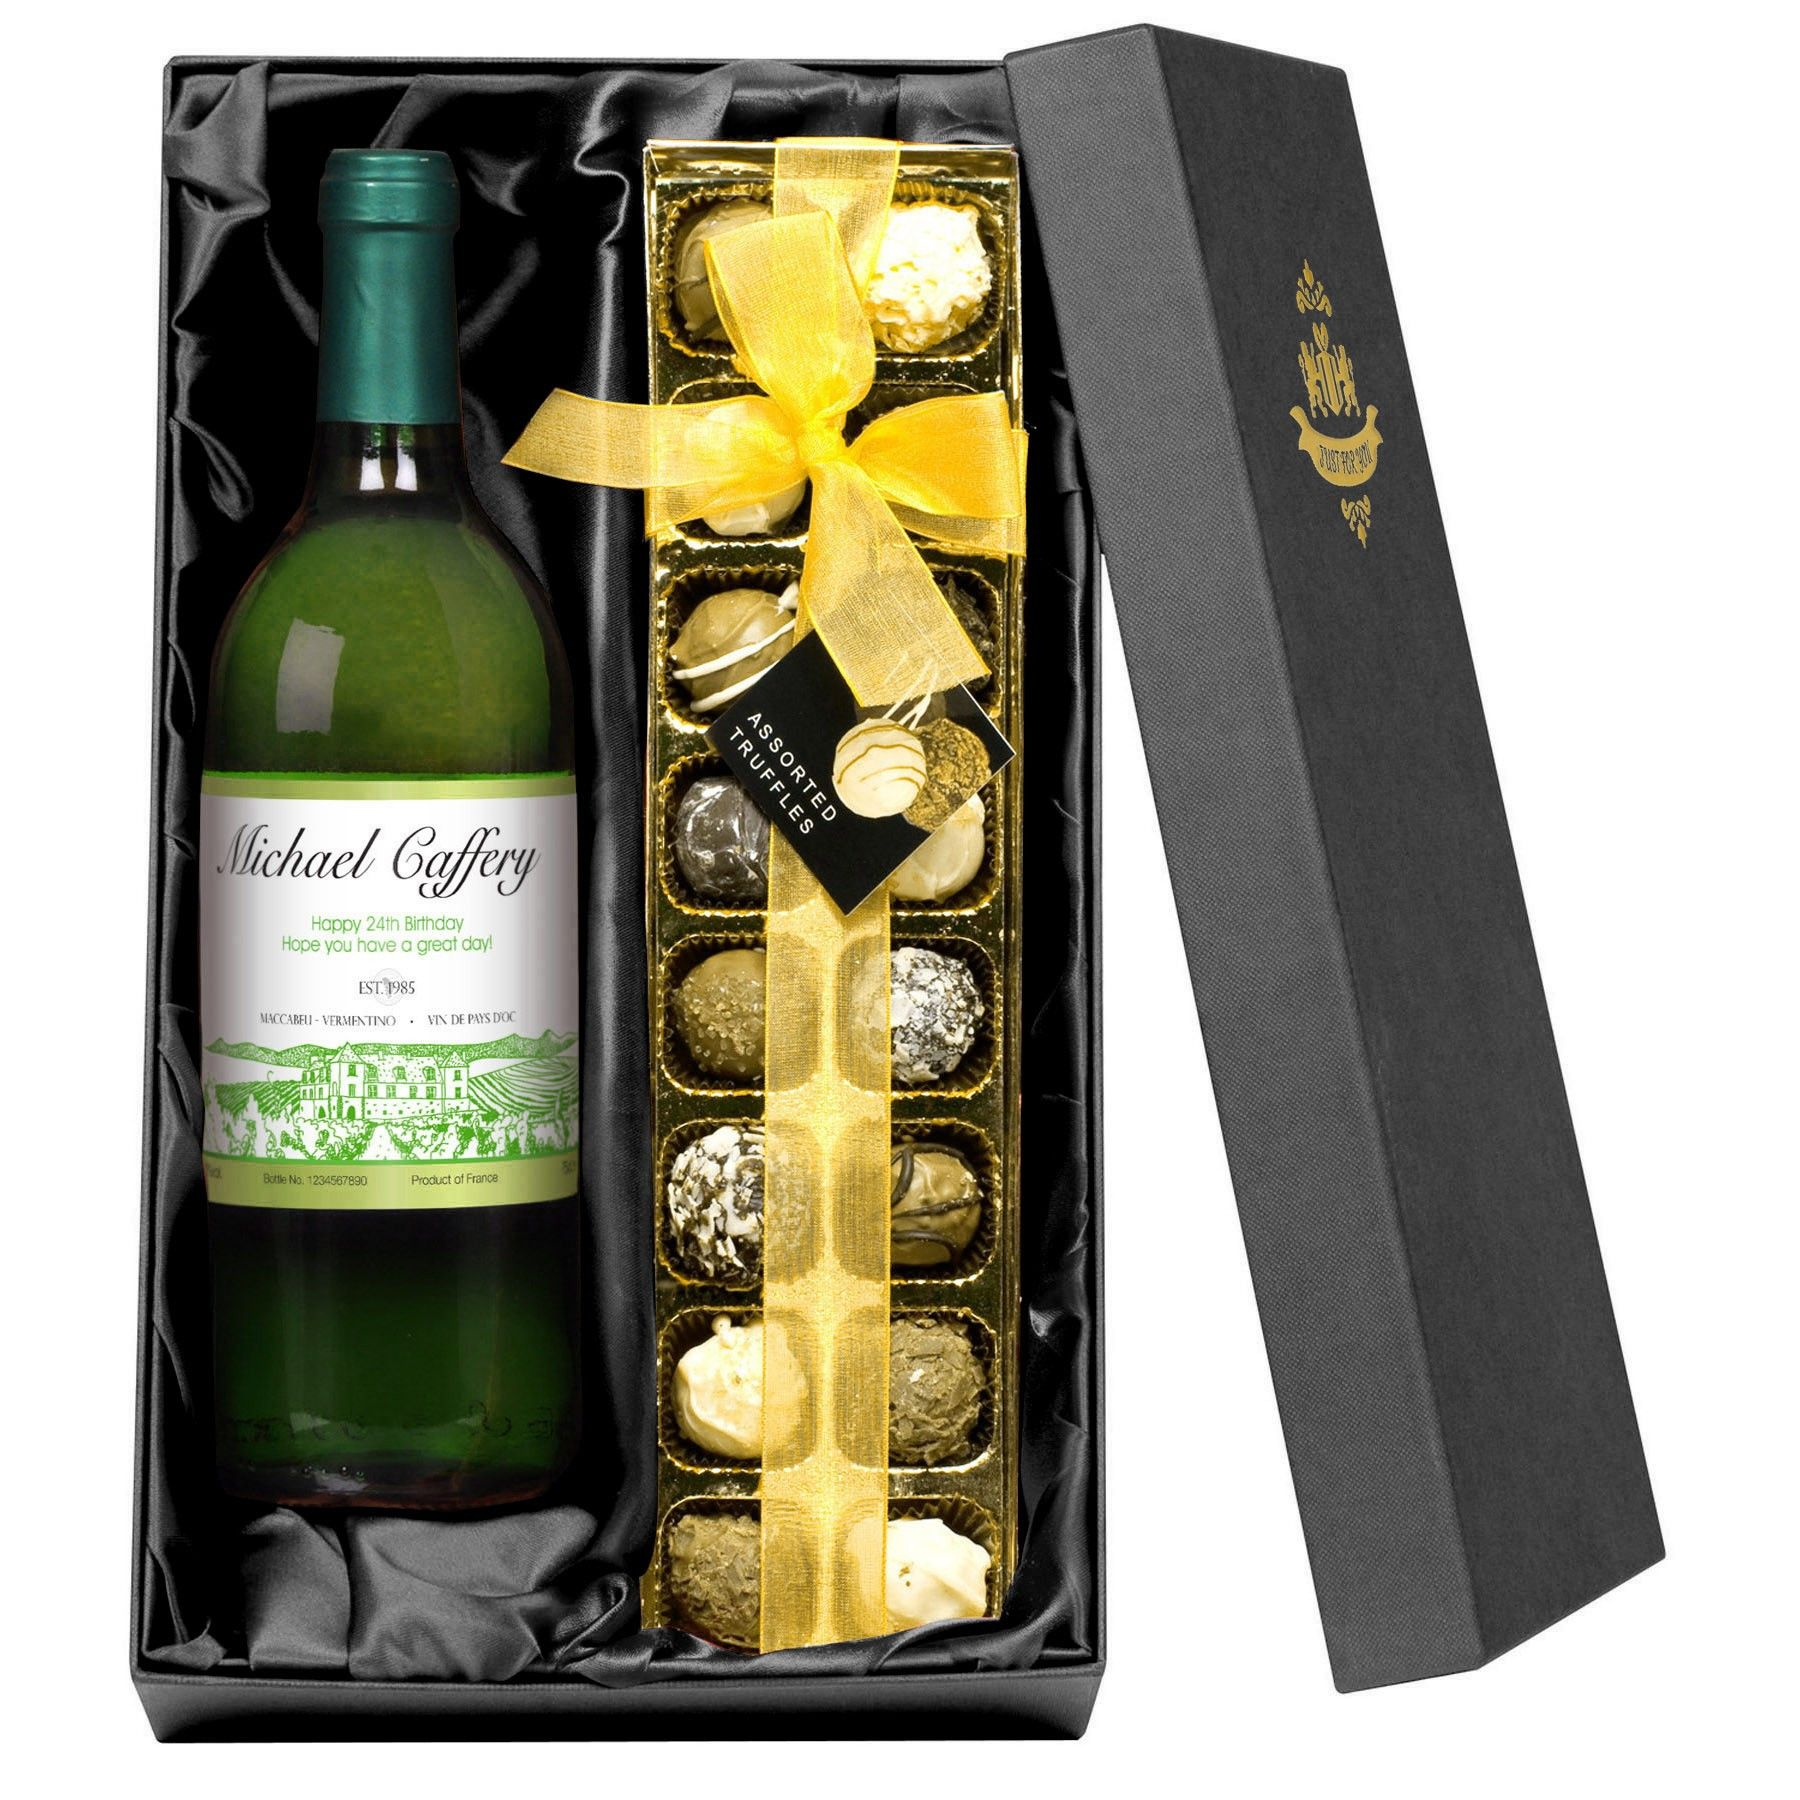 Shop Now! French VdP Vineya...  http://www.blueponystyle.com/products/french-vdp-vineyard-white-wine-with-chocolates-giftpack?utm_campaign=social_autopilot&utm_source=pin&utm_medium=pin   #etsymntt #EtsySocial #ESLiving #EpicOnEtsy #etsyretwt #gift #ATSocialUK  #shopifypicks